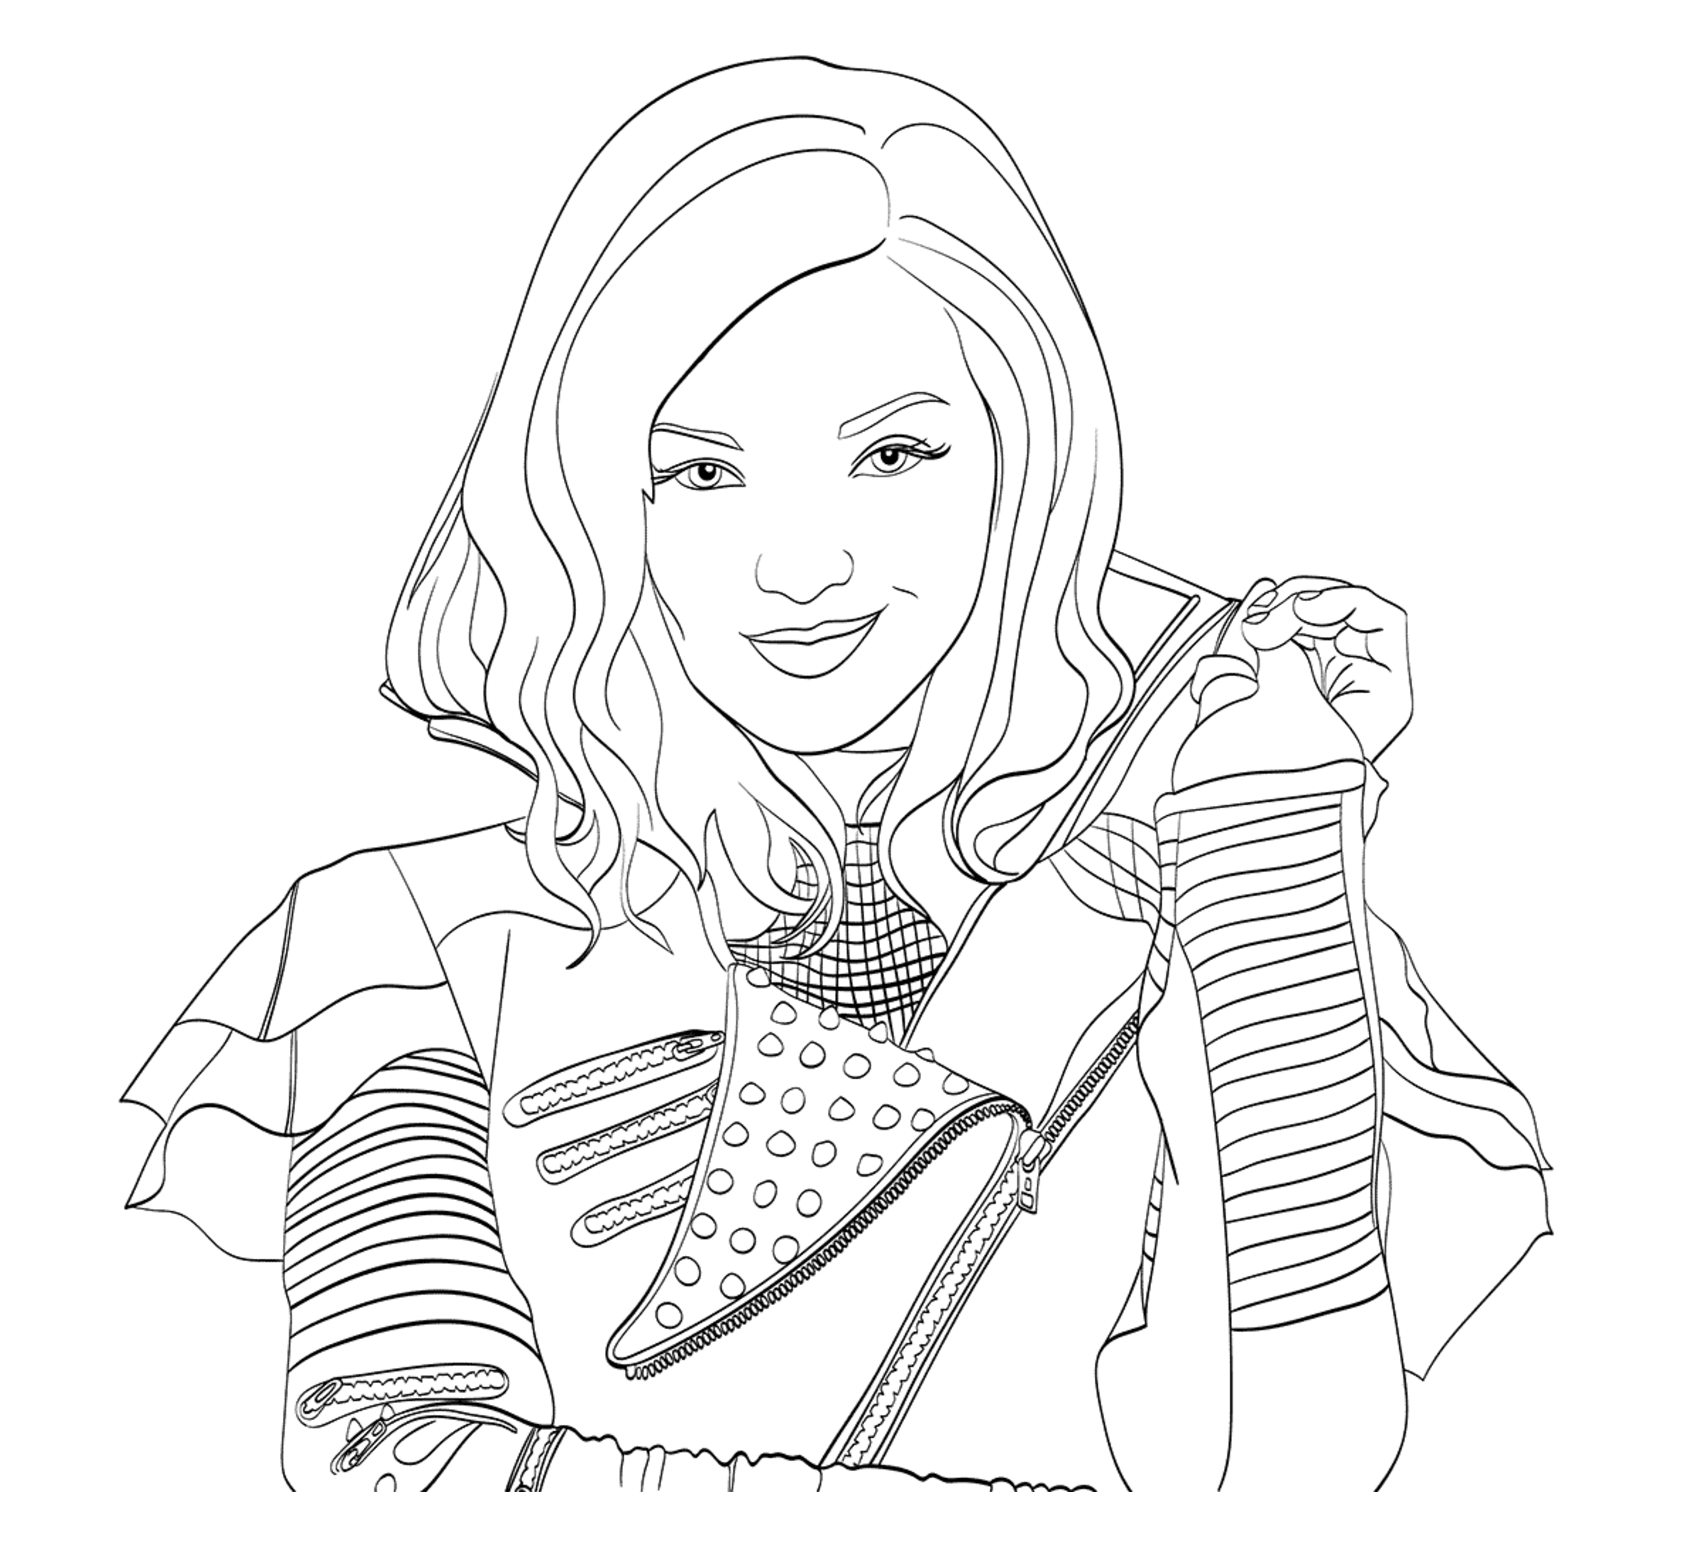 Free The Descendants Coloring Page To Print And Color From The Gallery The Descendants In 2020 Descendants Coloring Pages Disney Coloring Pages Coloring Pages